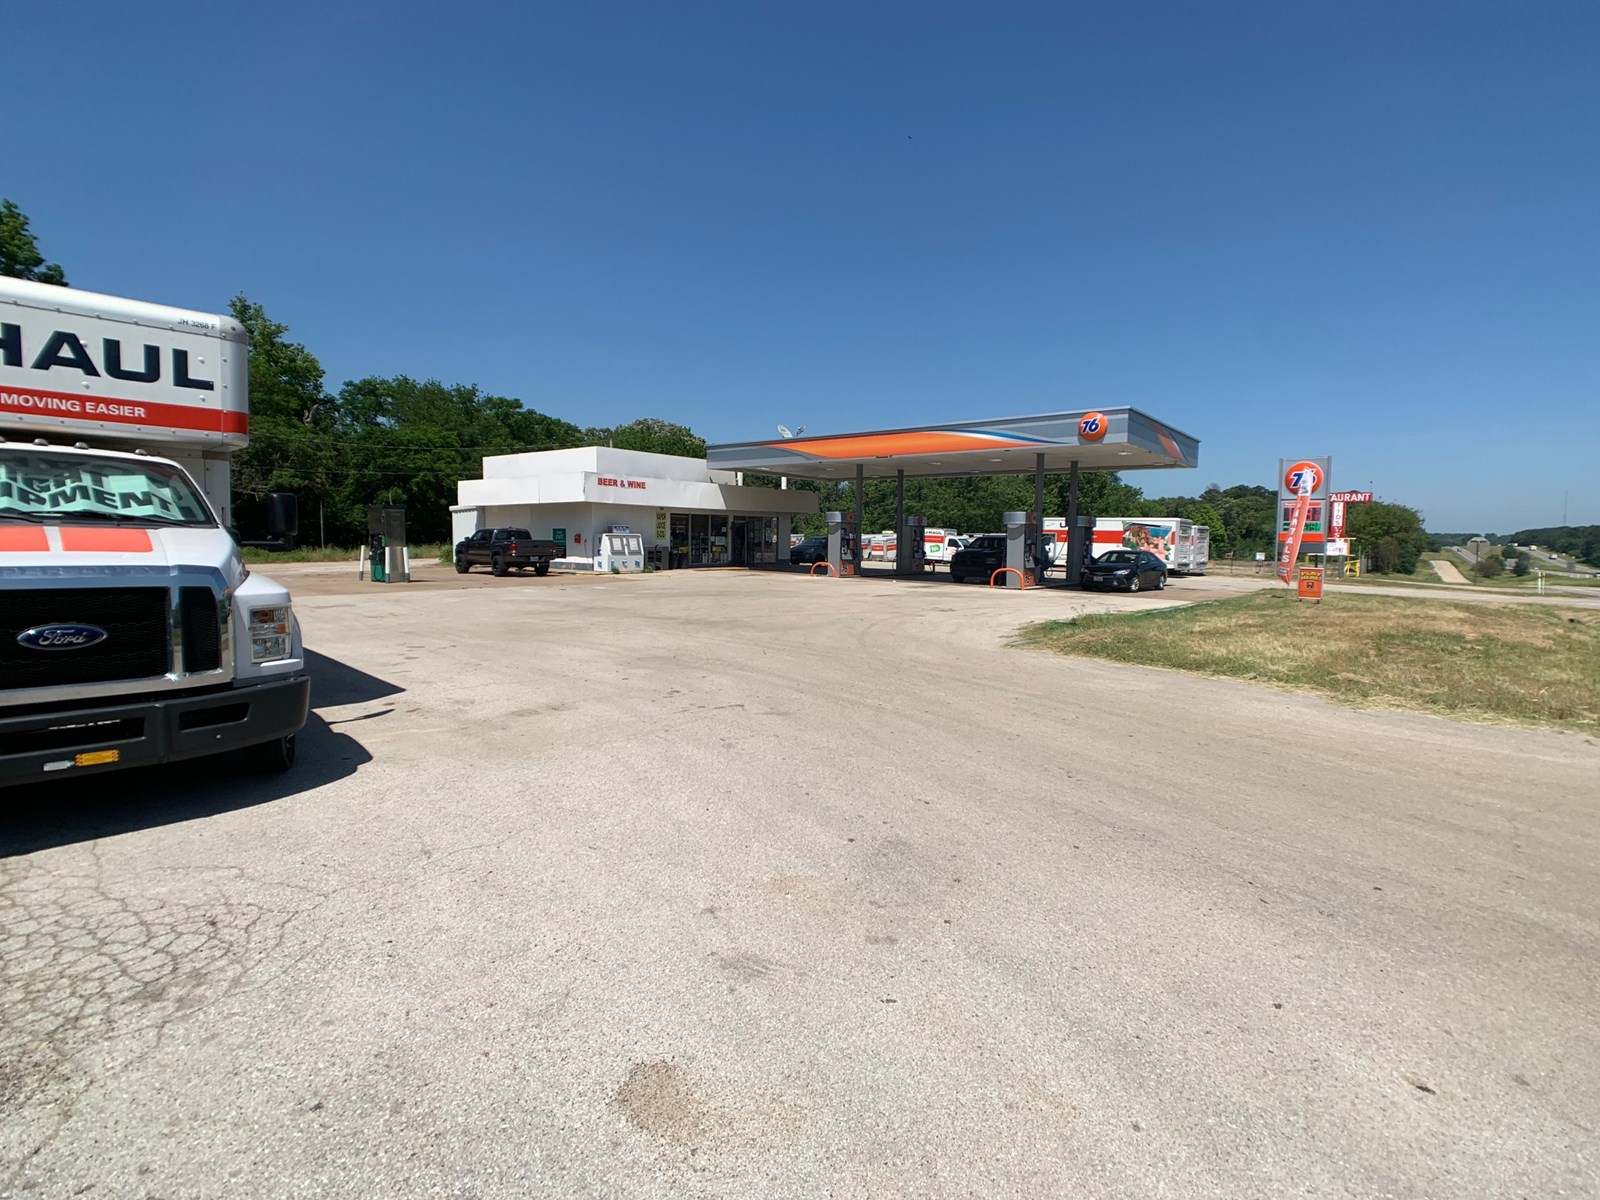 76 CONVENIENCE STORE ON INTERSTATE 20